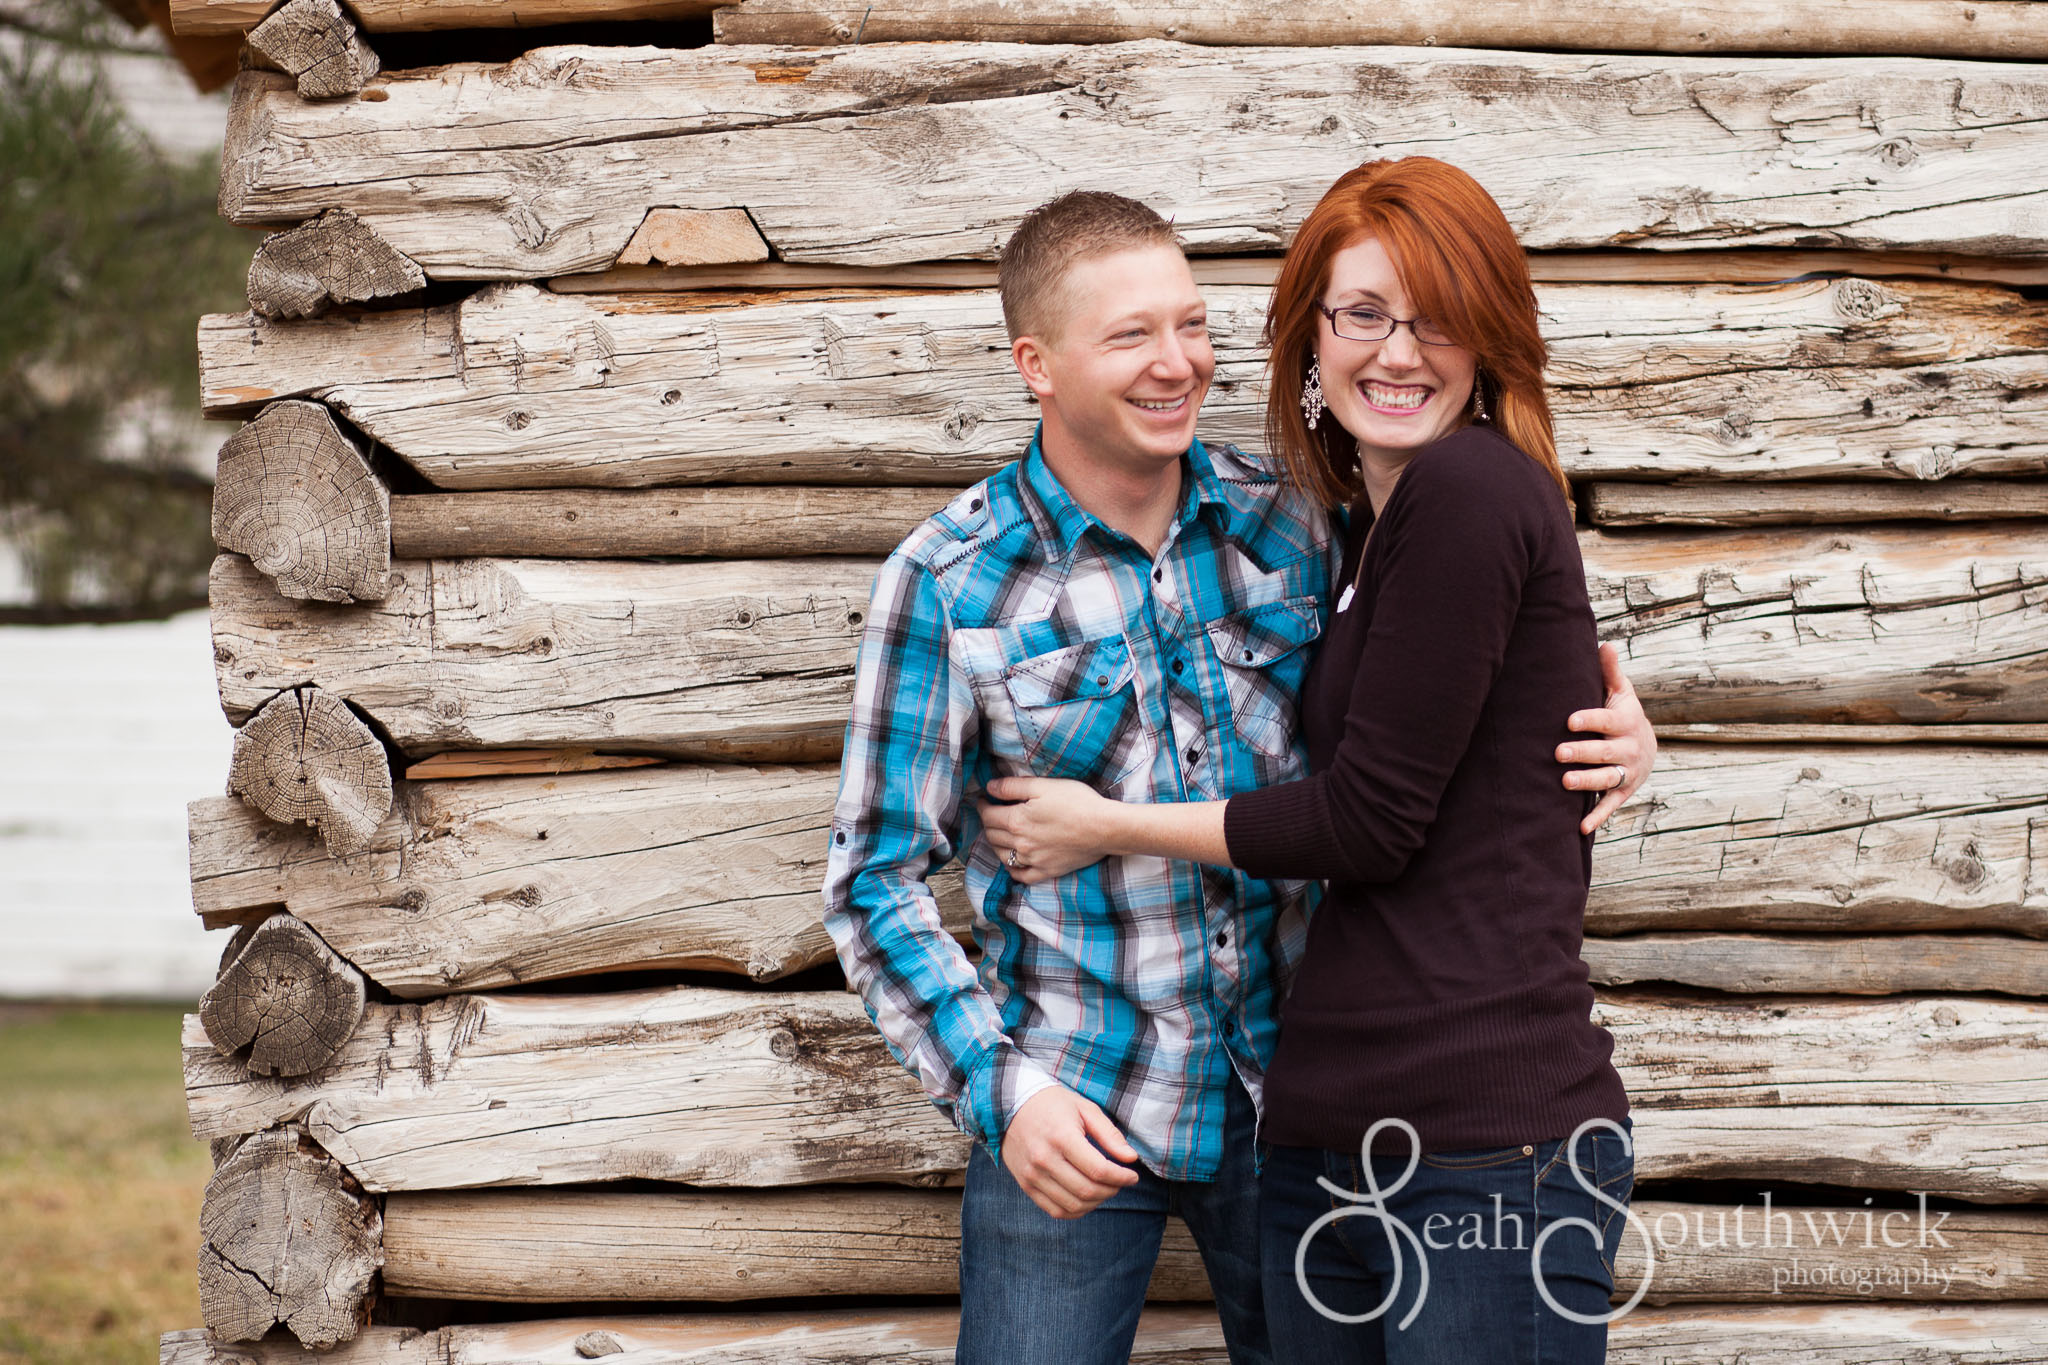 Engagement Photography Leah Southwick Photography-2.jpg